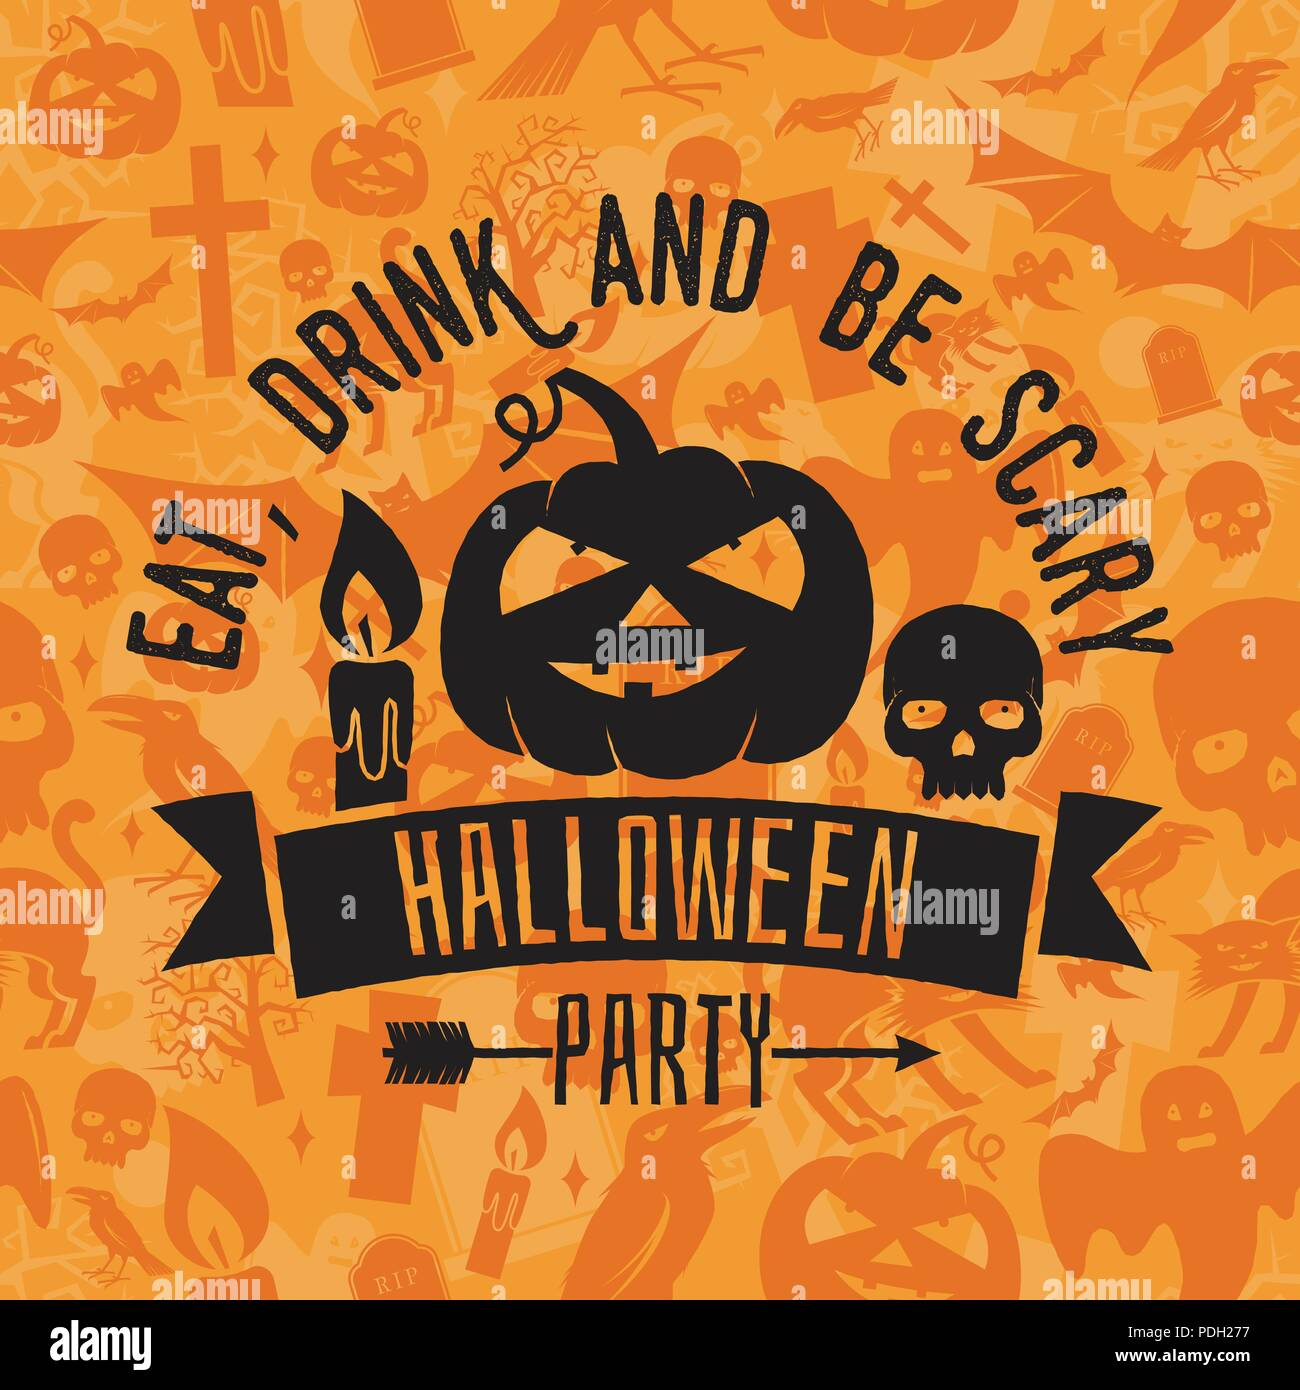 Eat, drink and be scary  Halloween night party concept